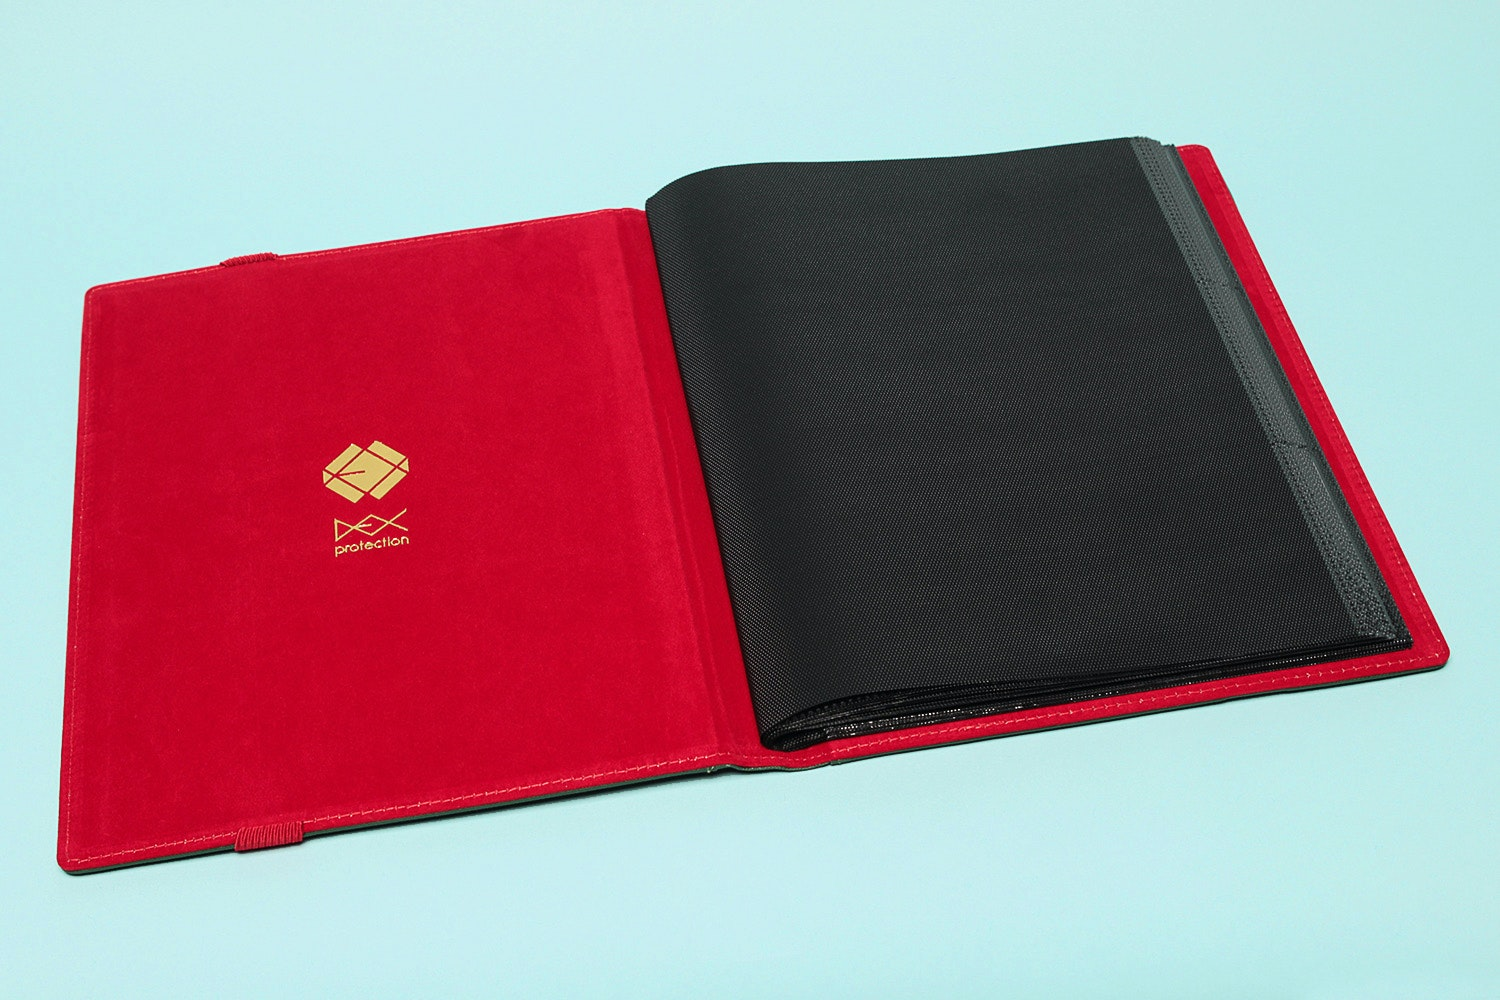 Dex Protection 9-Pocket Binder (2-Pack)